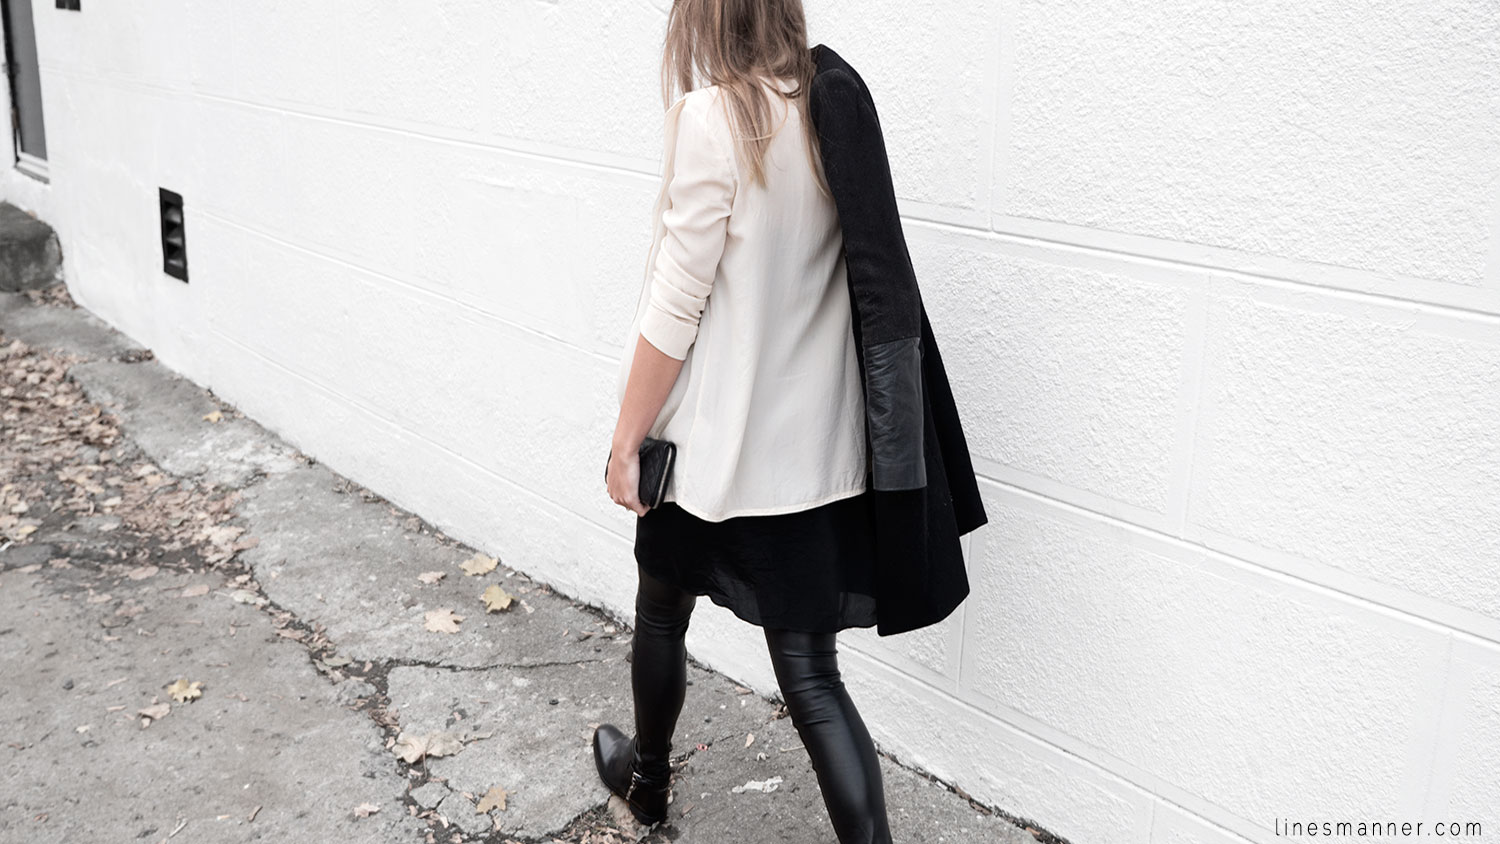 Lines-Manner-Timeless-Comfort-Essentials-Monochrome-Trend-Minimal-Textures-Fall-Leather-Details-Simplicity-Modern-Basics-Outfit-Structure-Relaxed-Leather-Luxurious-Sophistication-14